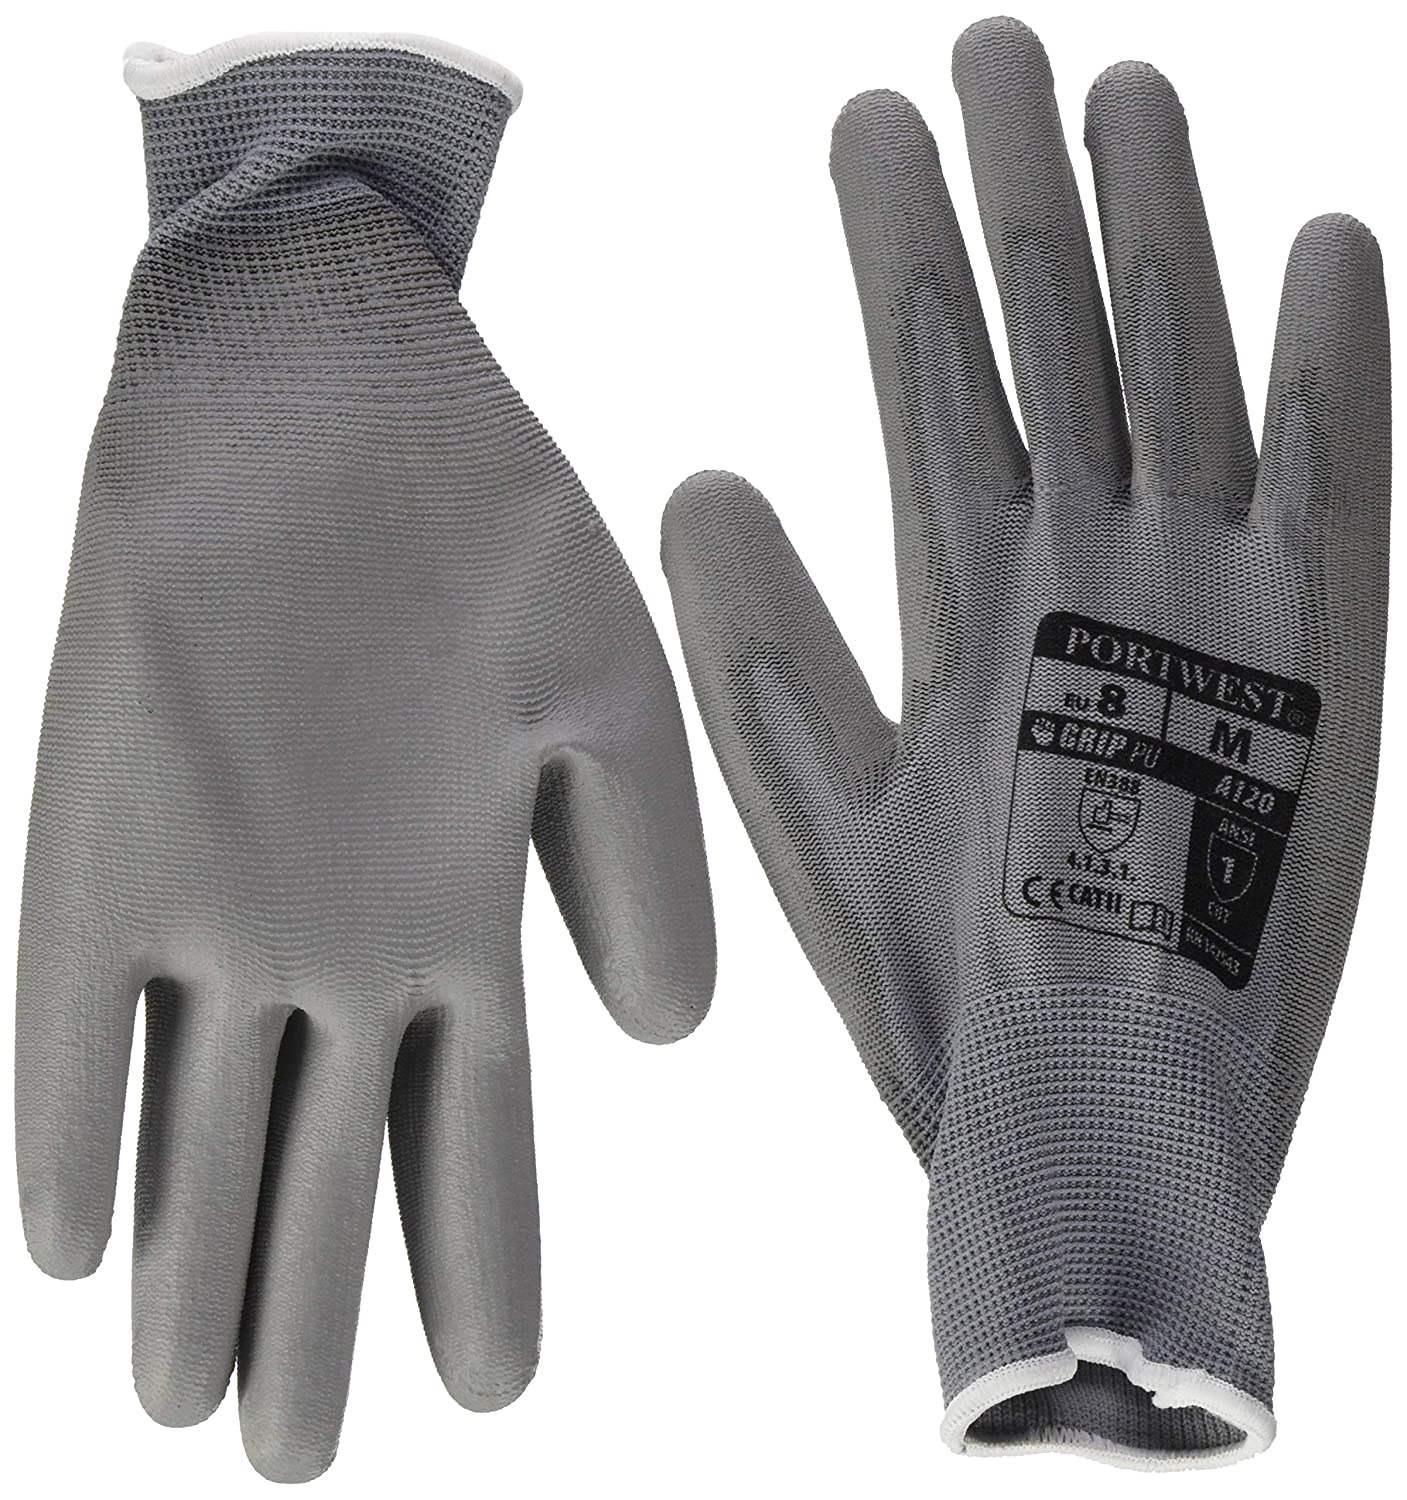 Portwest A120GRR Small PU Palm Gloves 12 Pack Grey